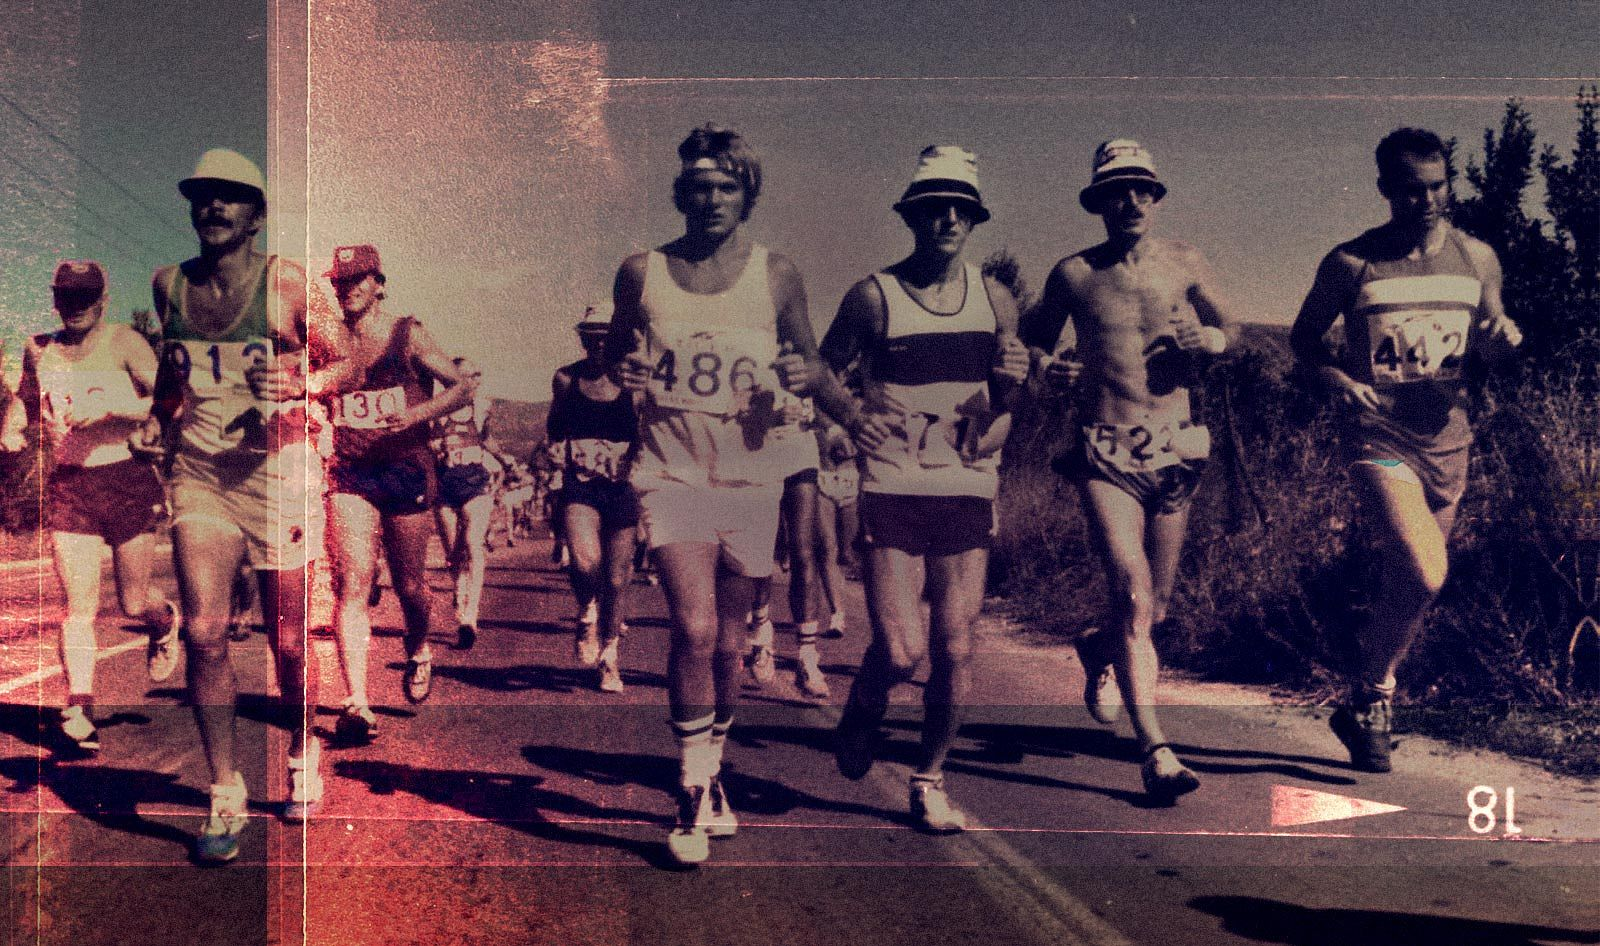 Vintage Photograph of Runners